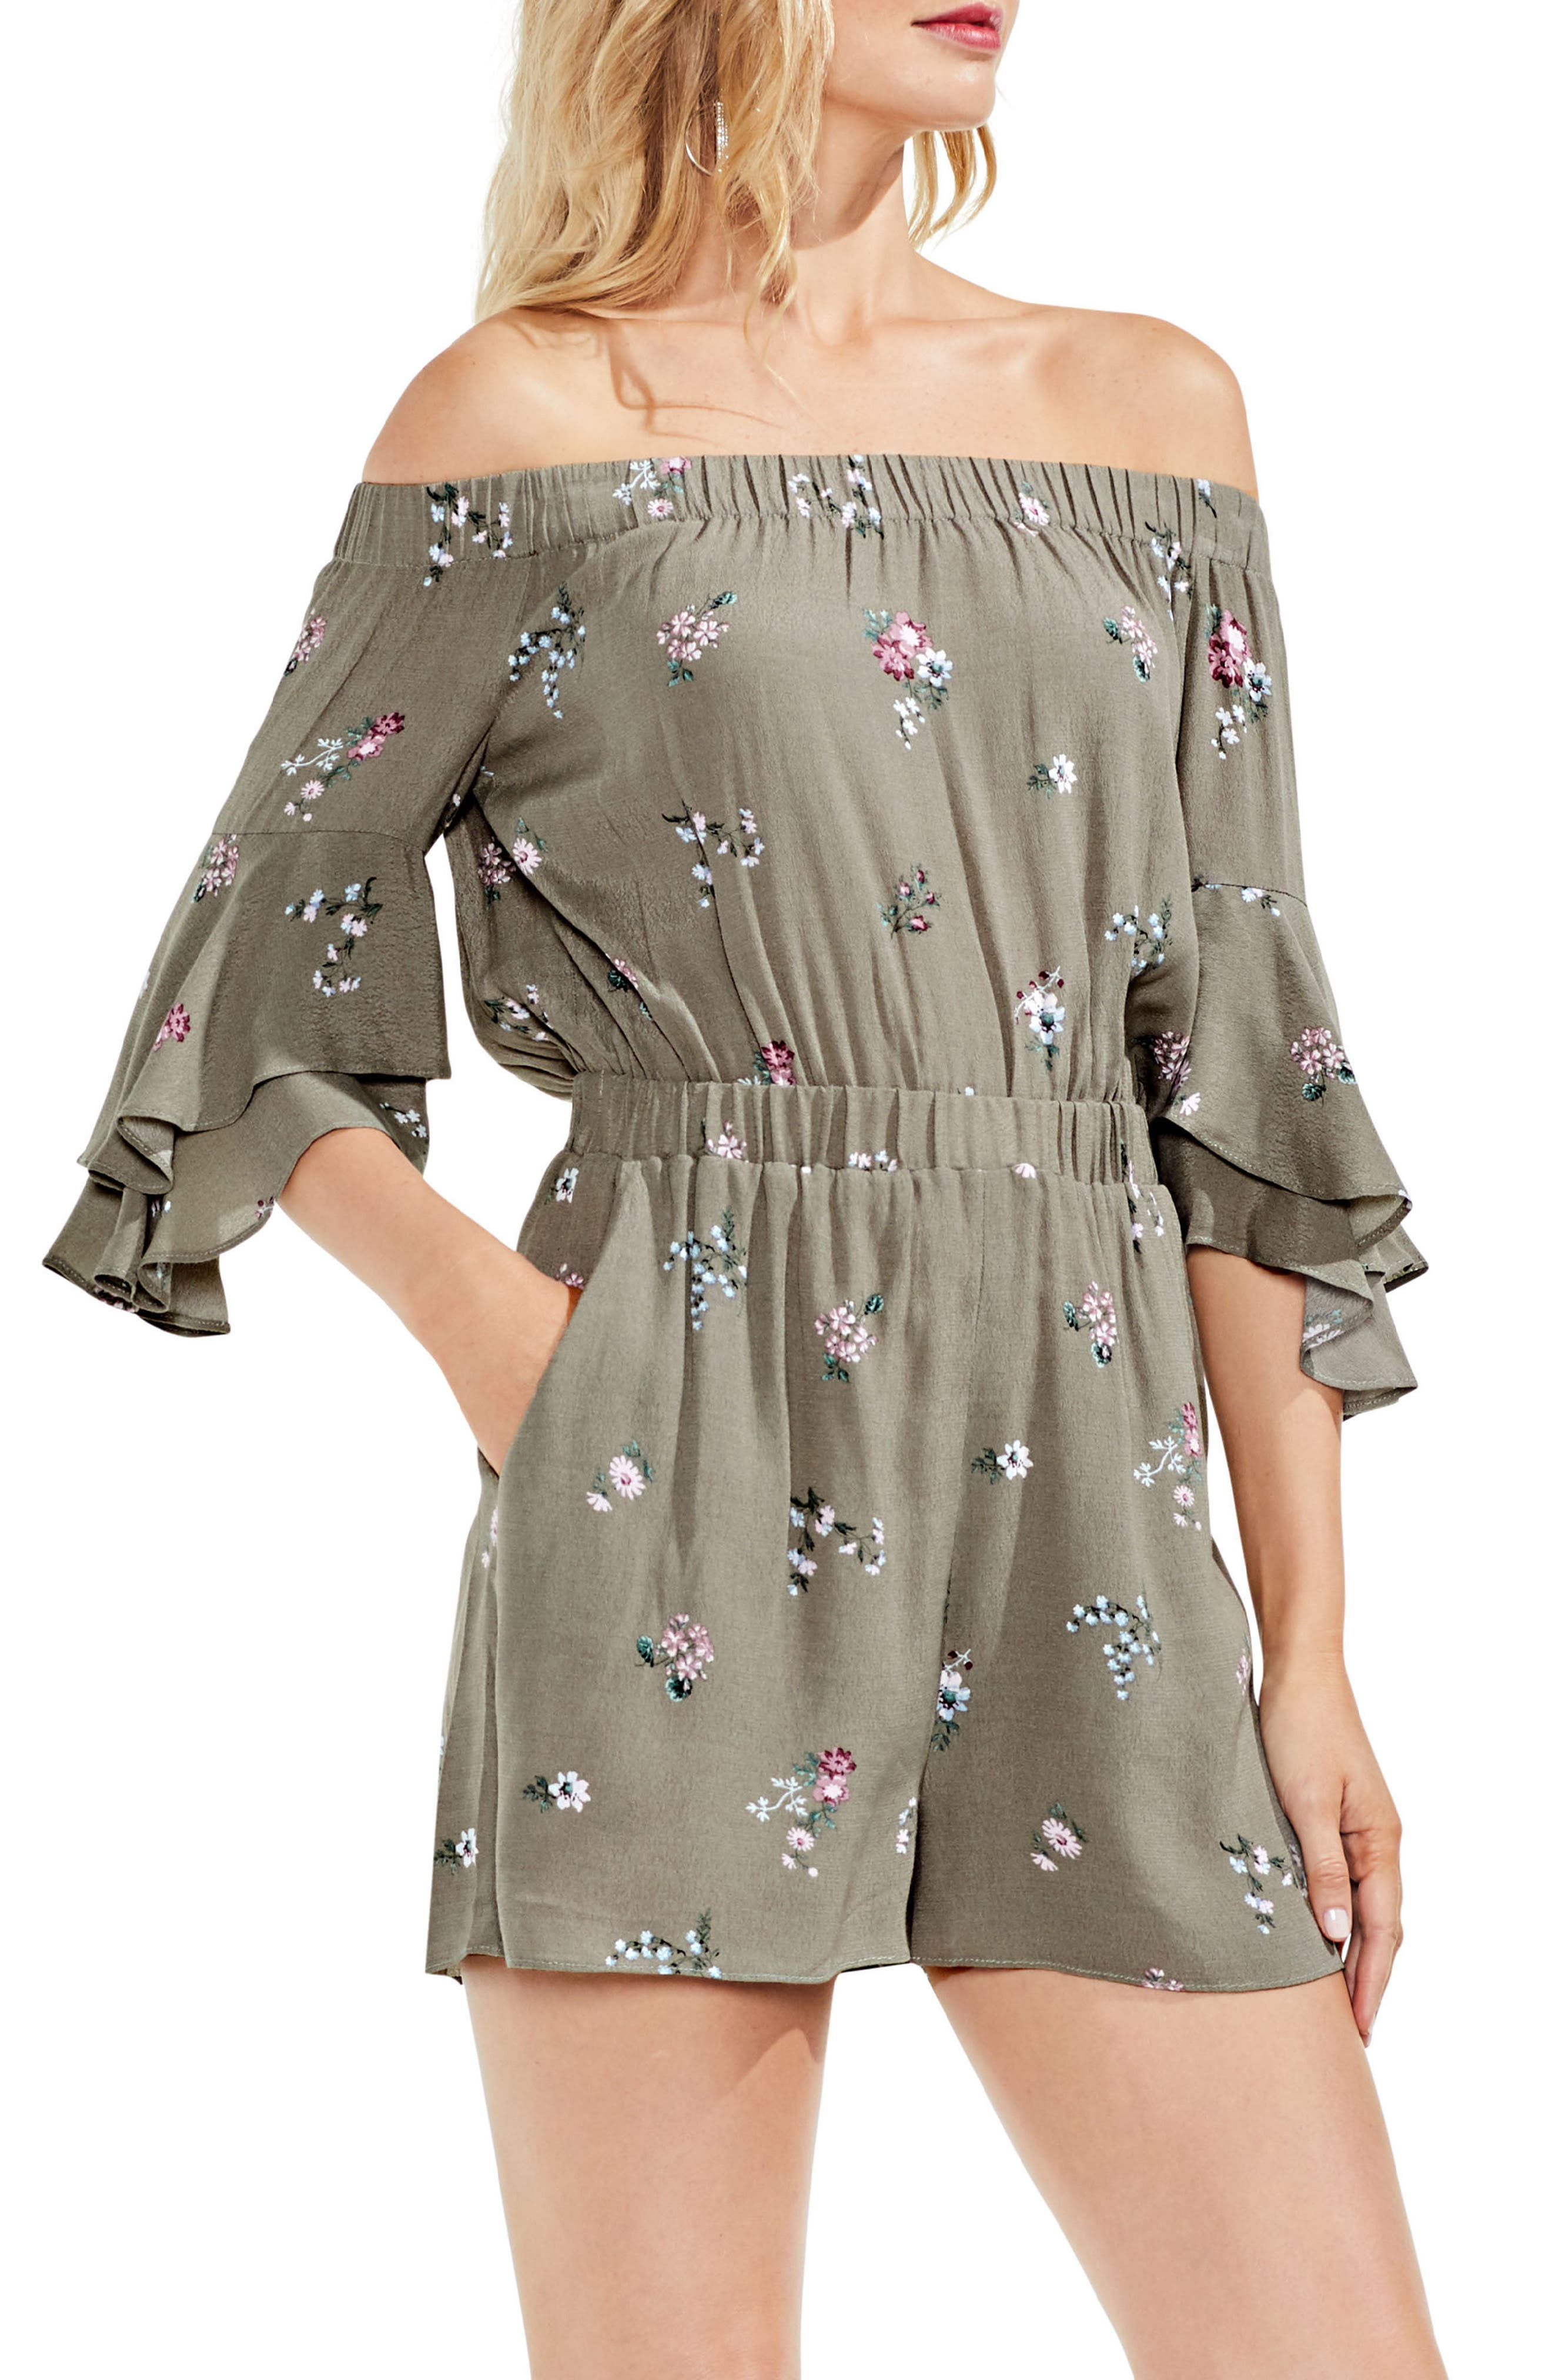 Off the Shoulder Ruffle Sleeve Floral Romper,                             Main thumbnail 1, color,                             Camo Green